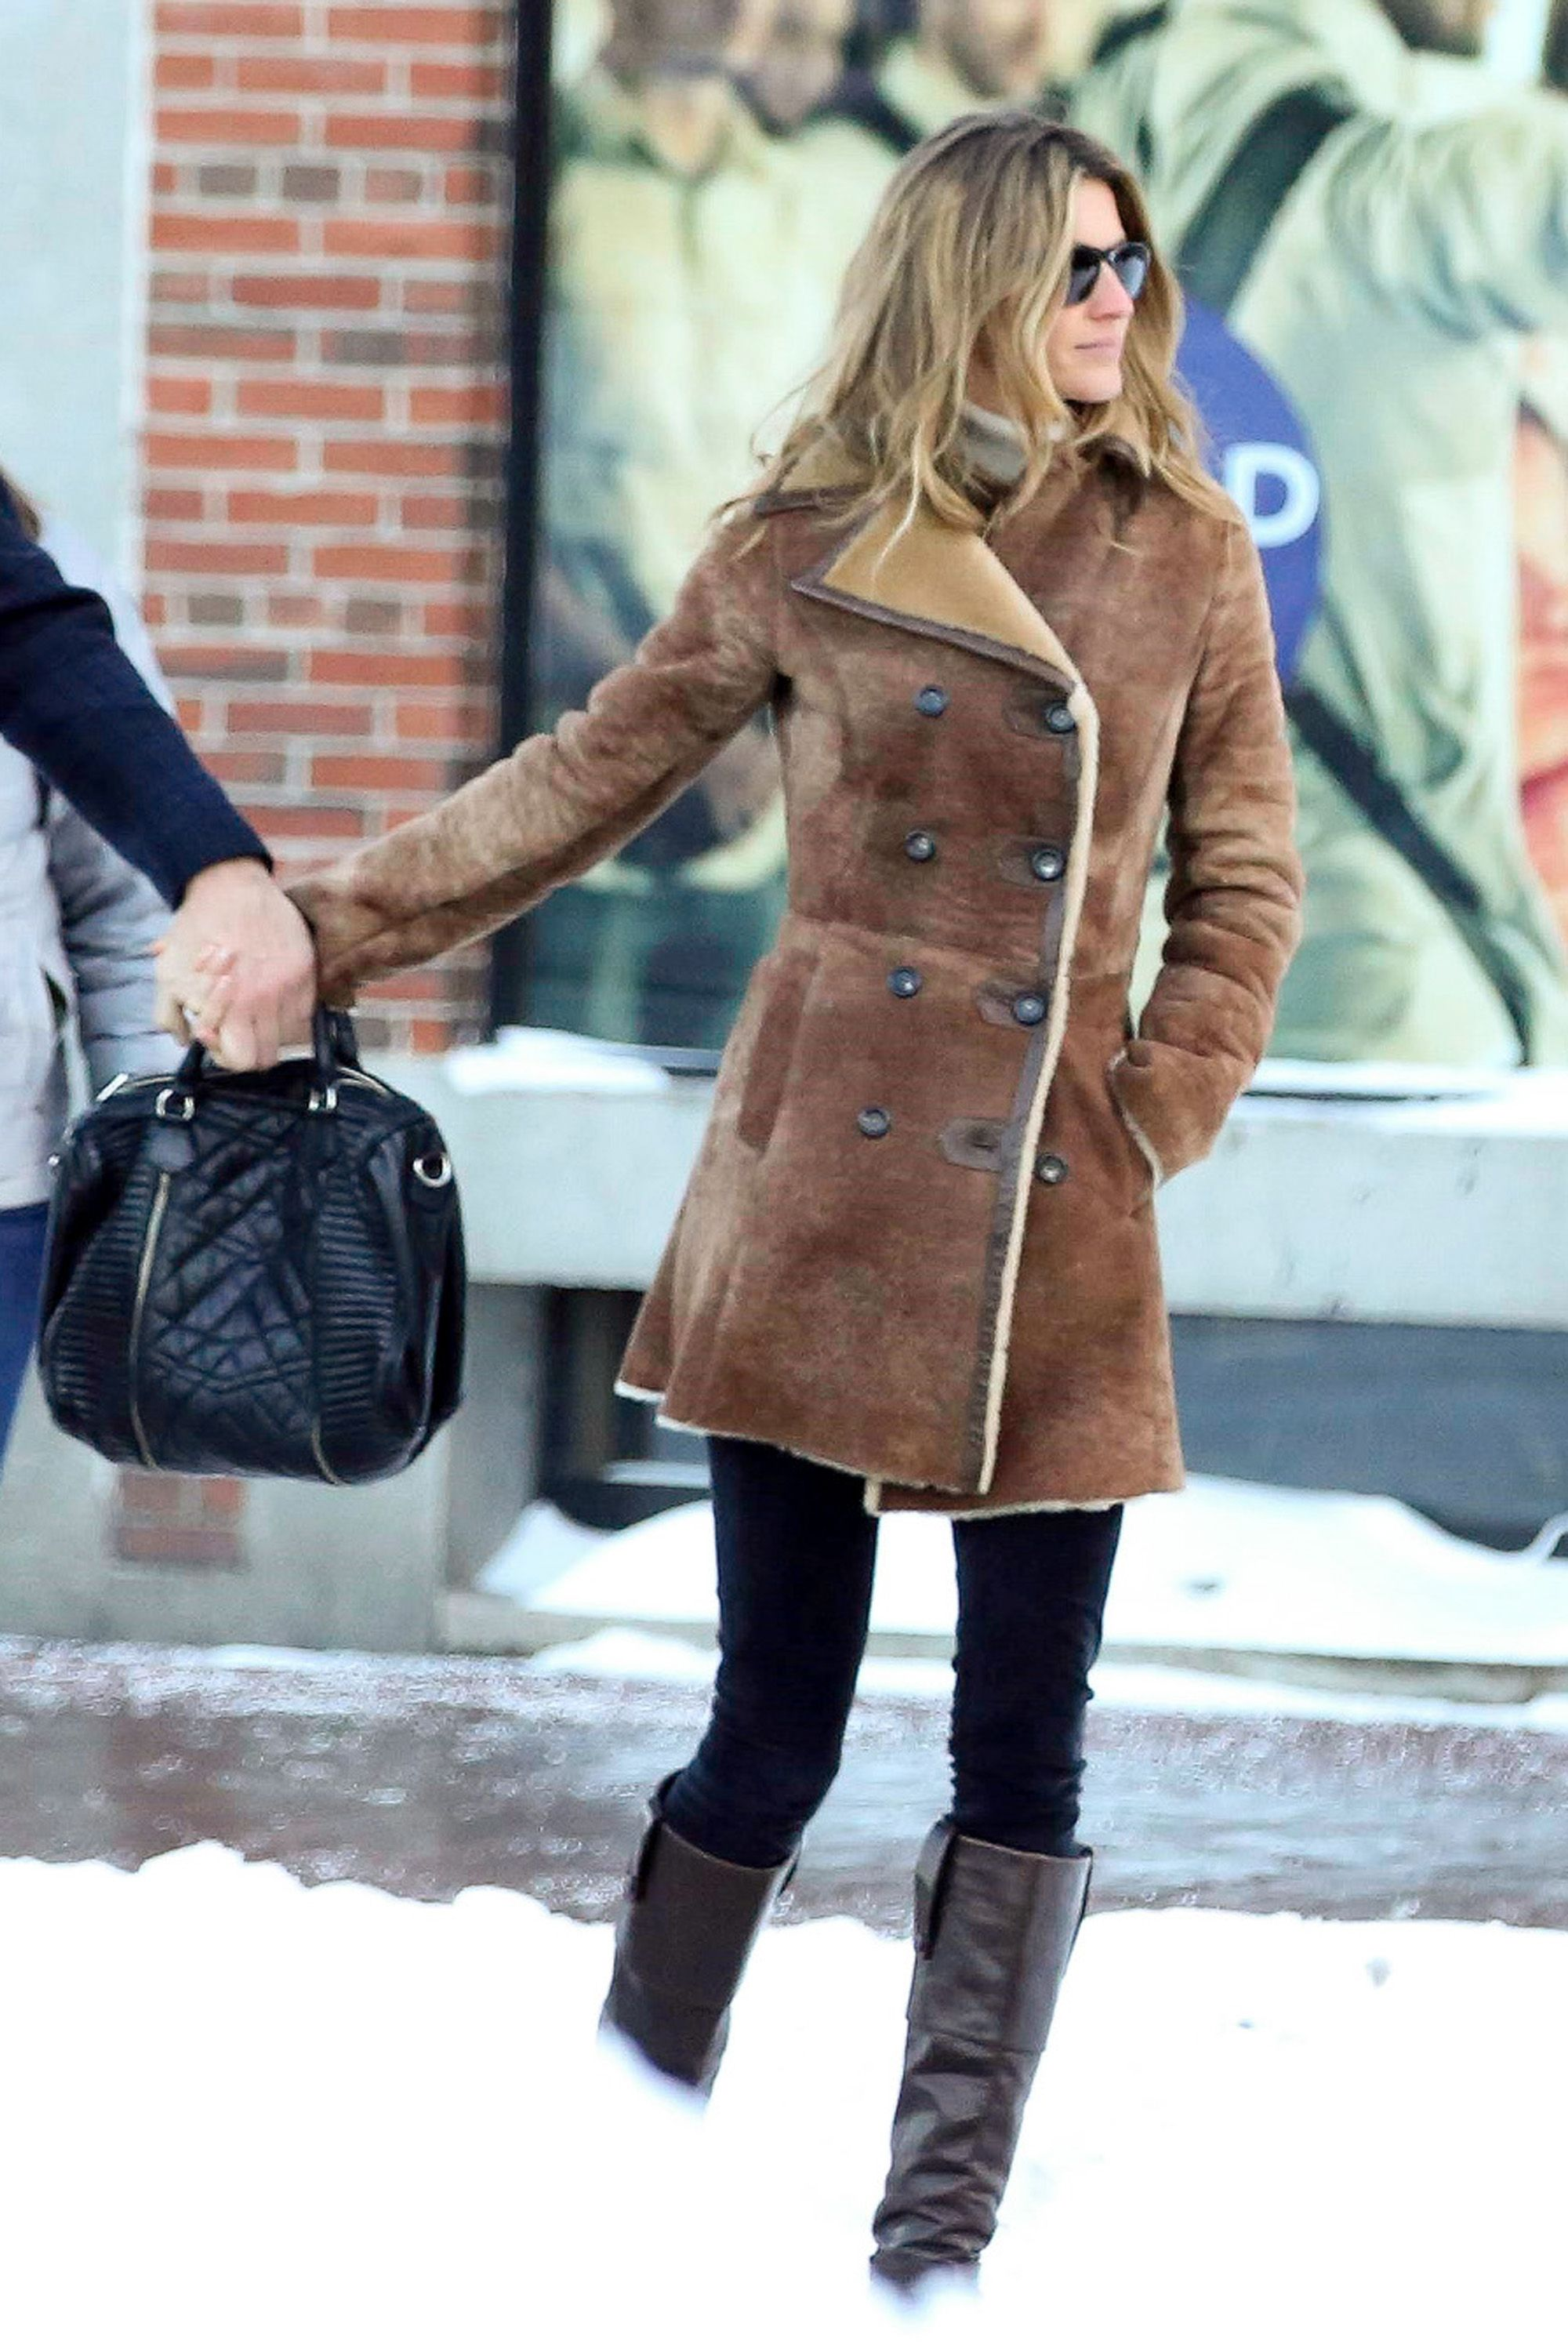 Warmth and style will never be mutually exclusive if you've got a fur-lined chestnut coat like Gisele's in your repertoire.